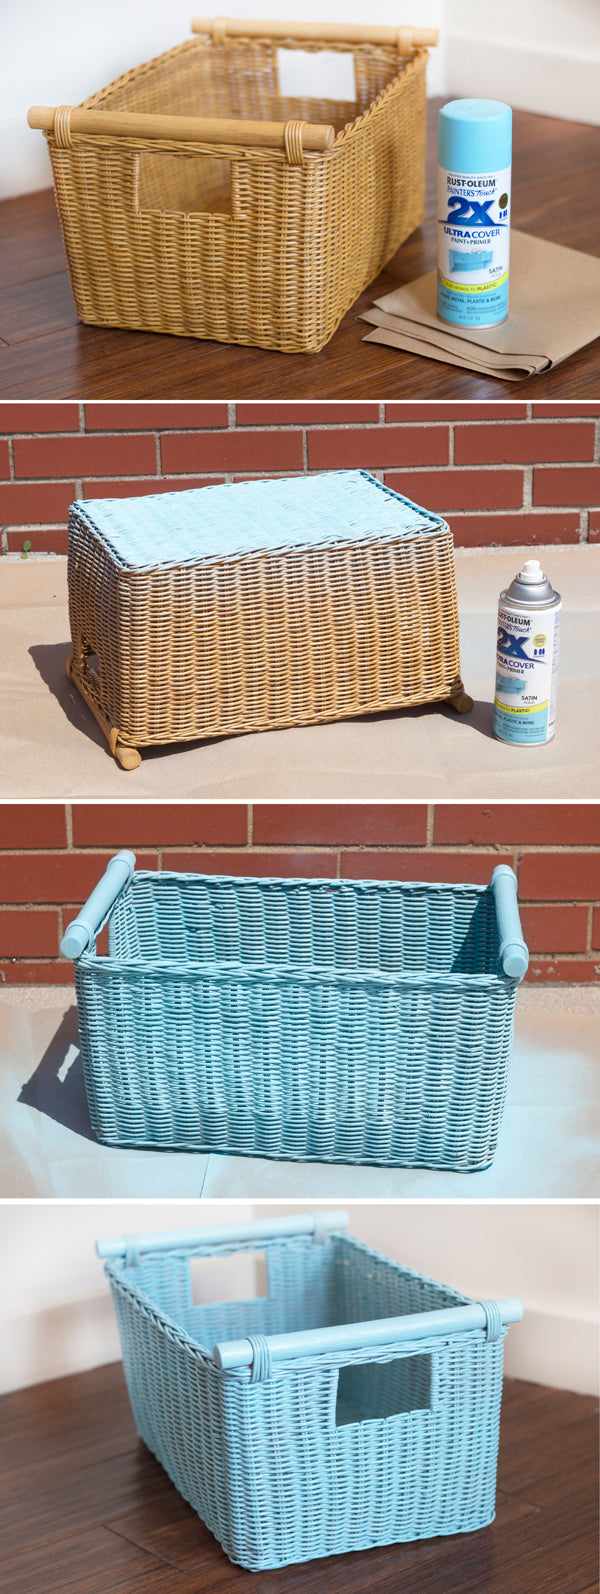 Step-by-step images for spray painting our Pole Handle Storage Basket